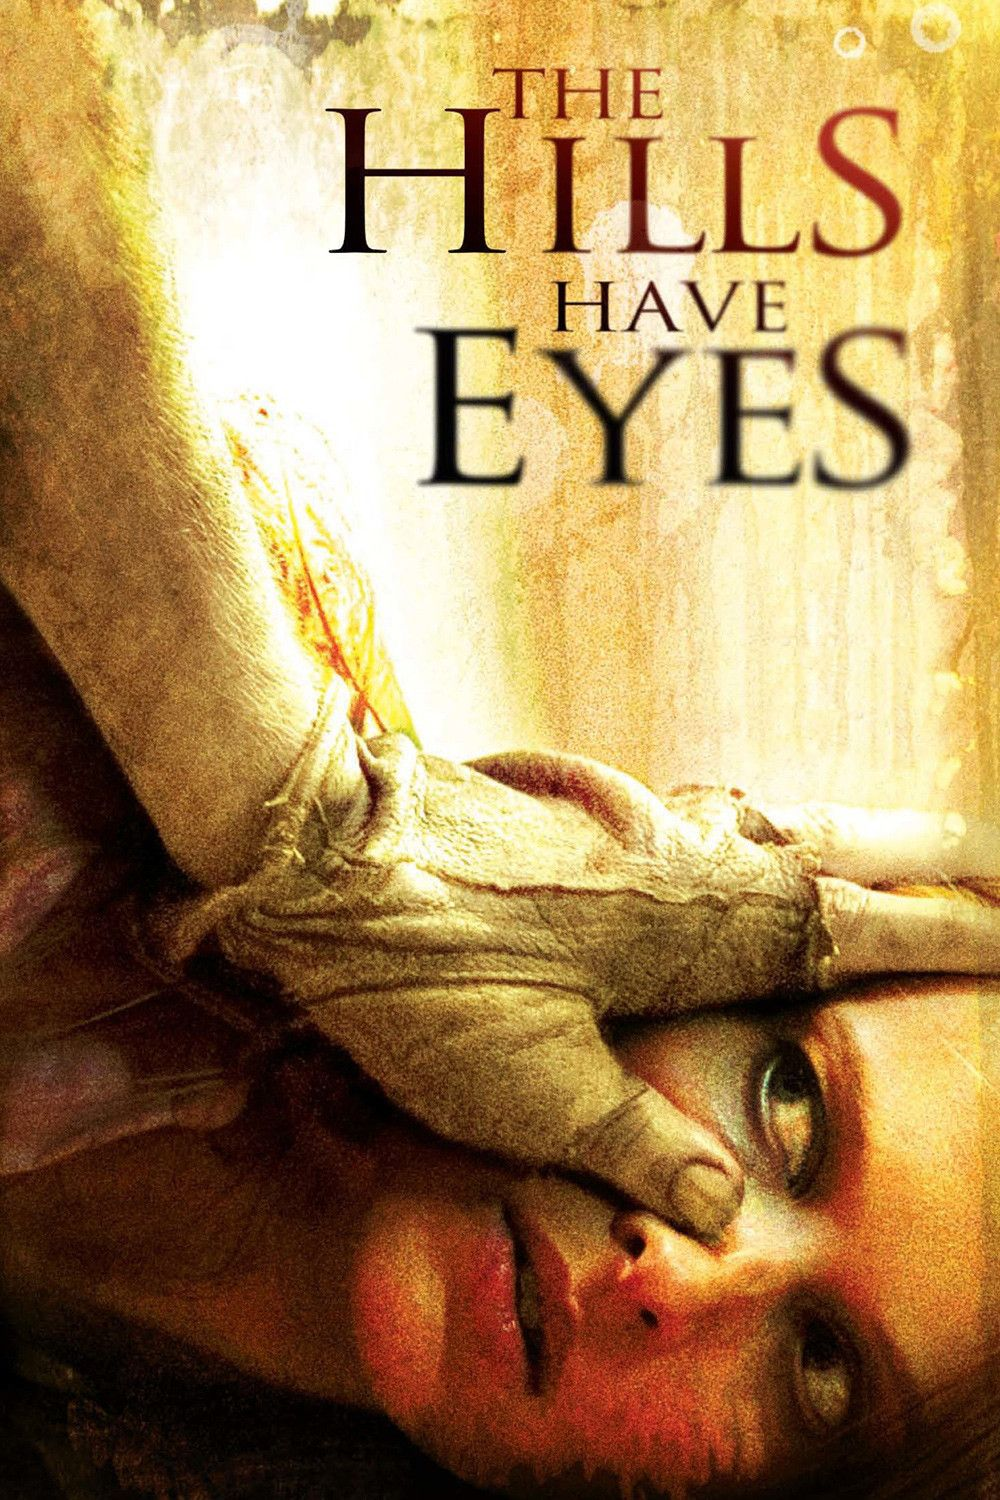 The Hills Have Eyes  Full Movie. Click Image To Watch The Hills Have Eyes 2006